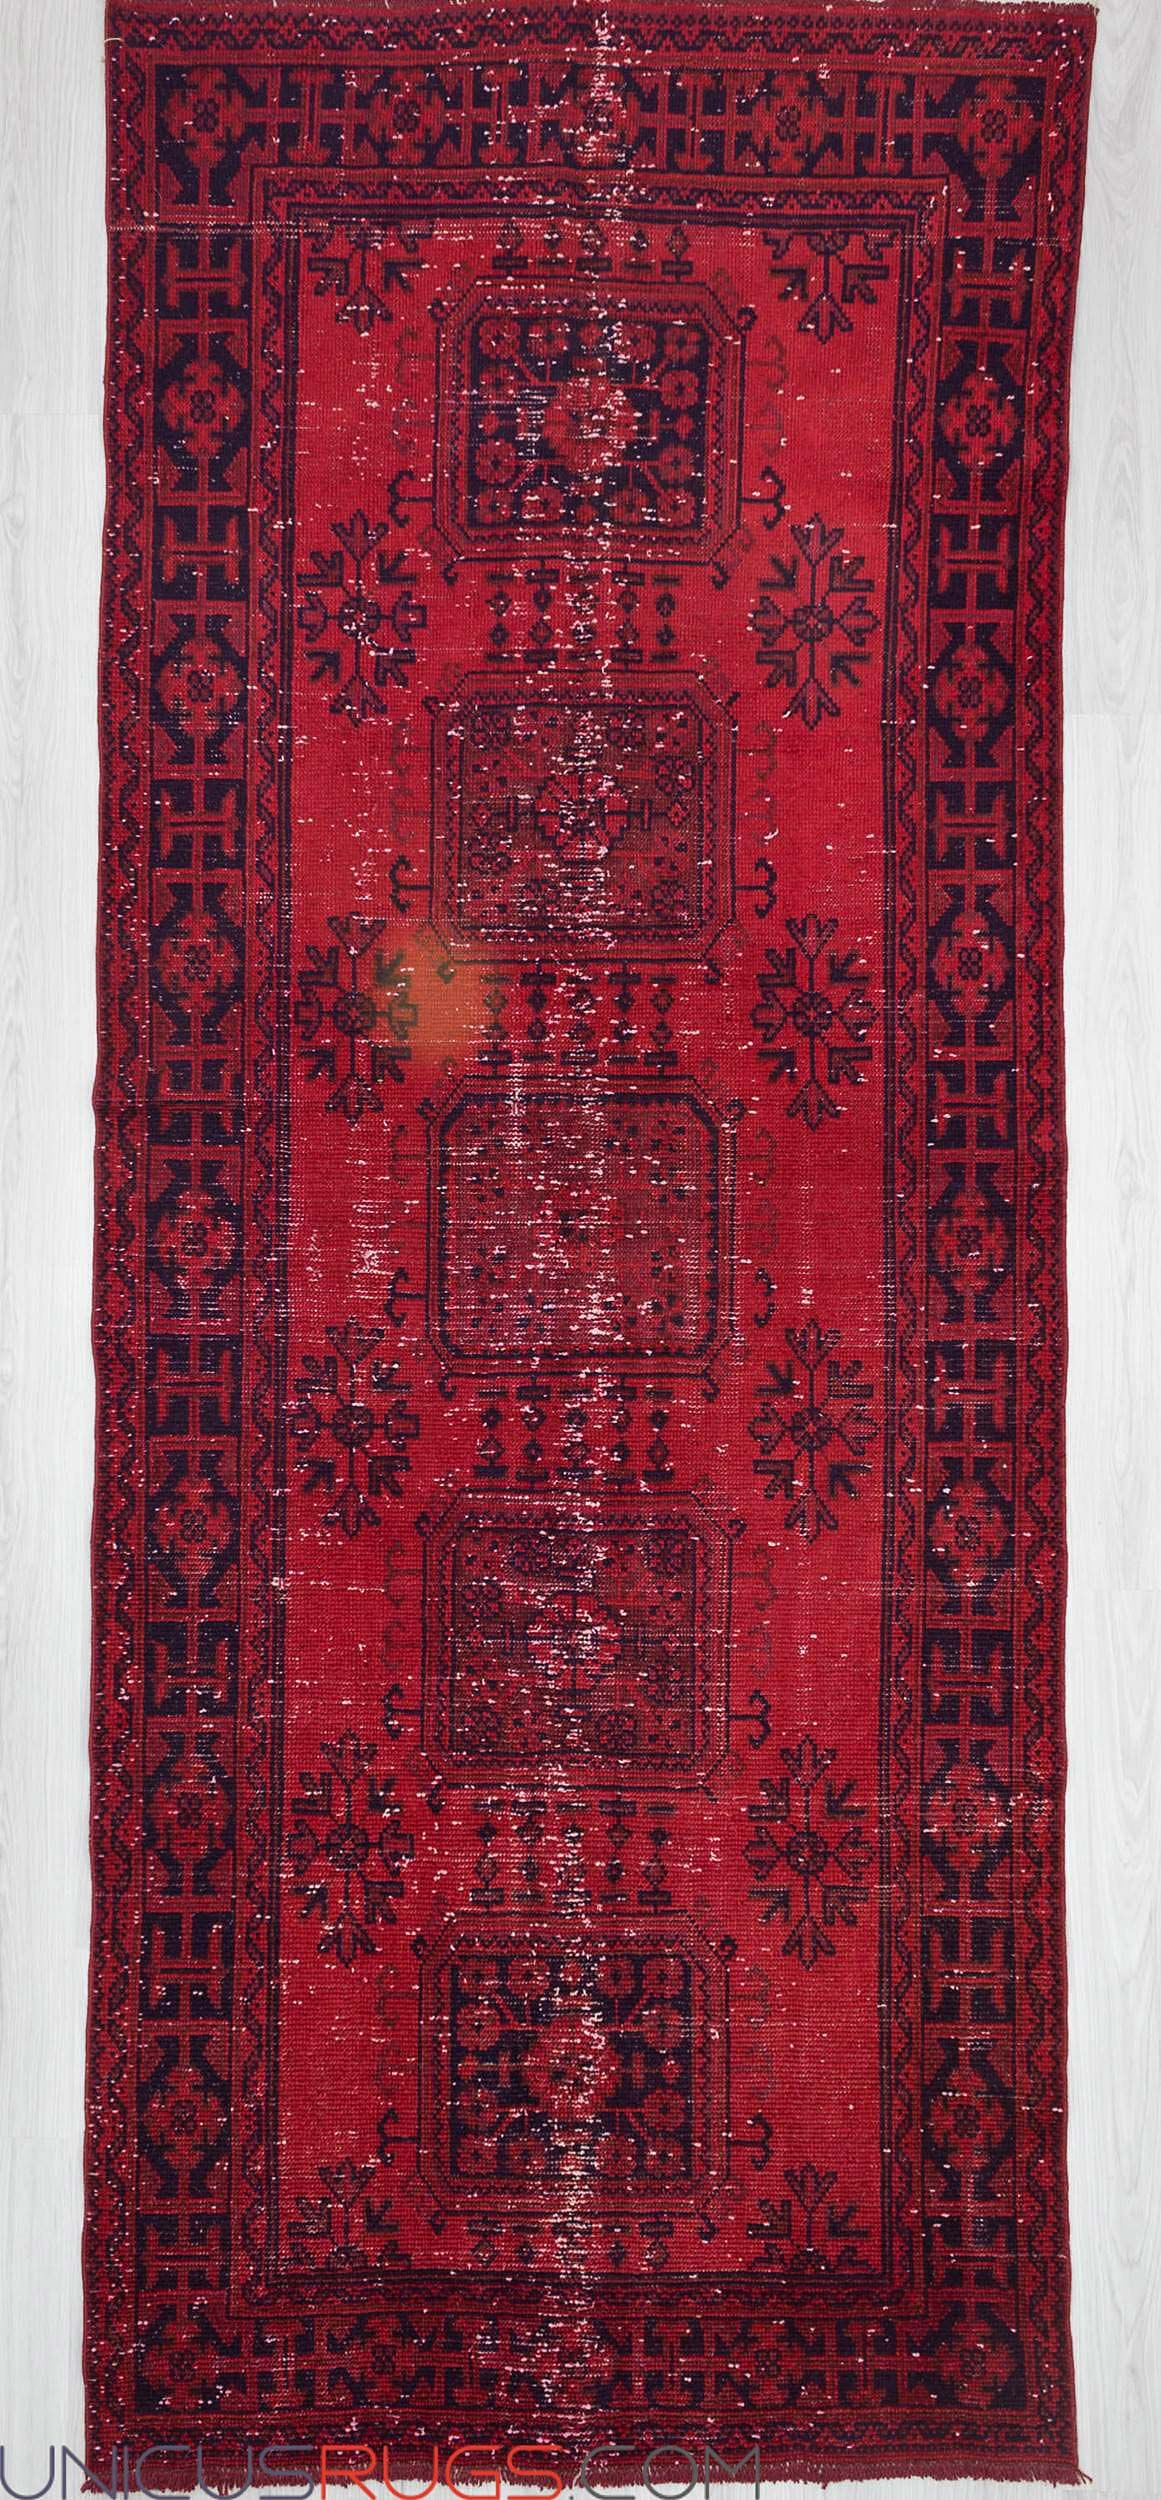 "Vintage hand-knotted decorative over-dyed wide red Turkish runner from Oushak region of Turkey. In good condition. Approximately 40-50 years old. Wool on wool Width: 4' 5"" - Length: 11' 3"" OVERDYED RUGS"